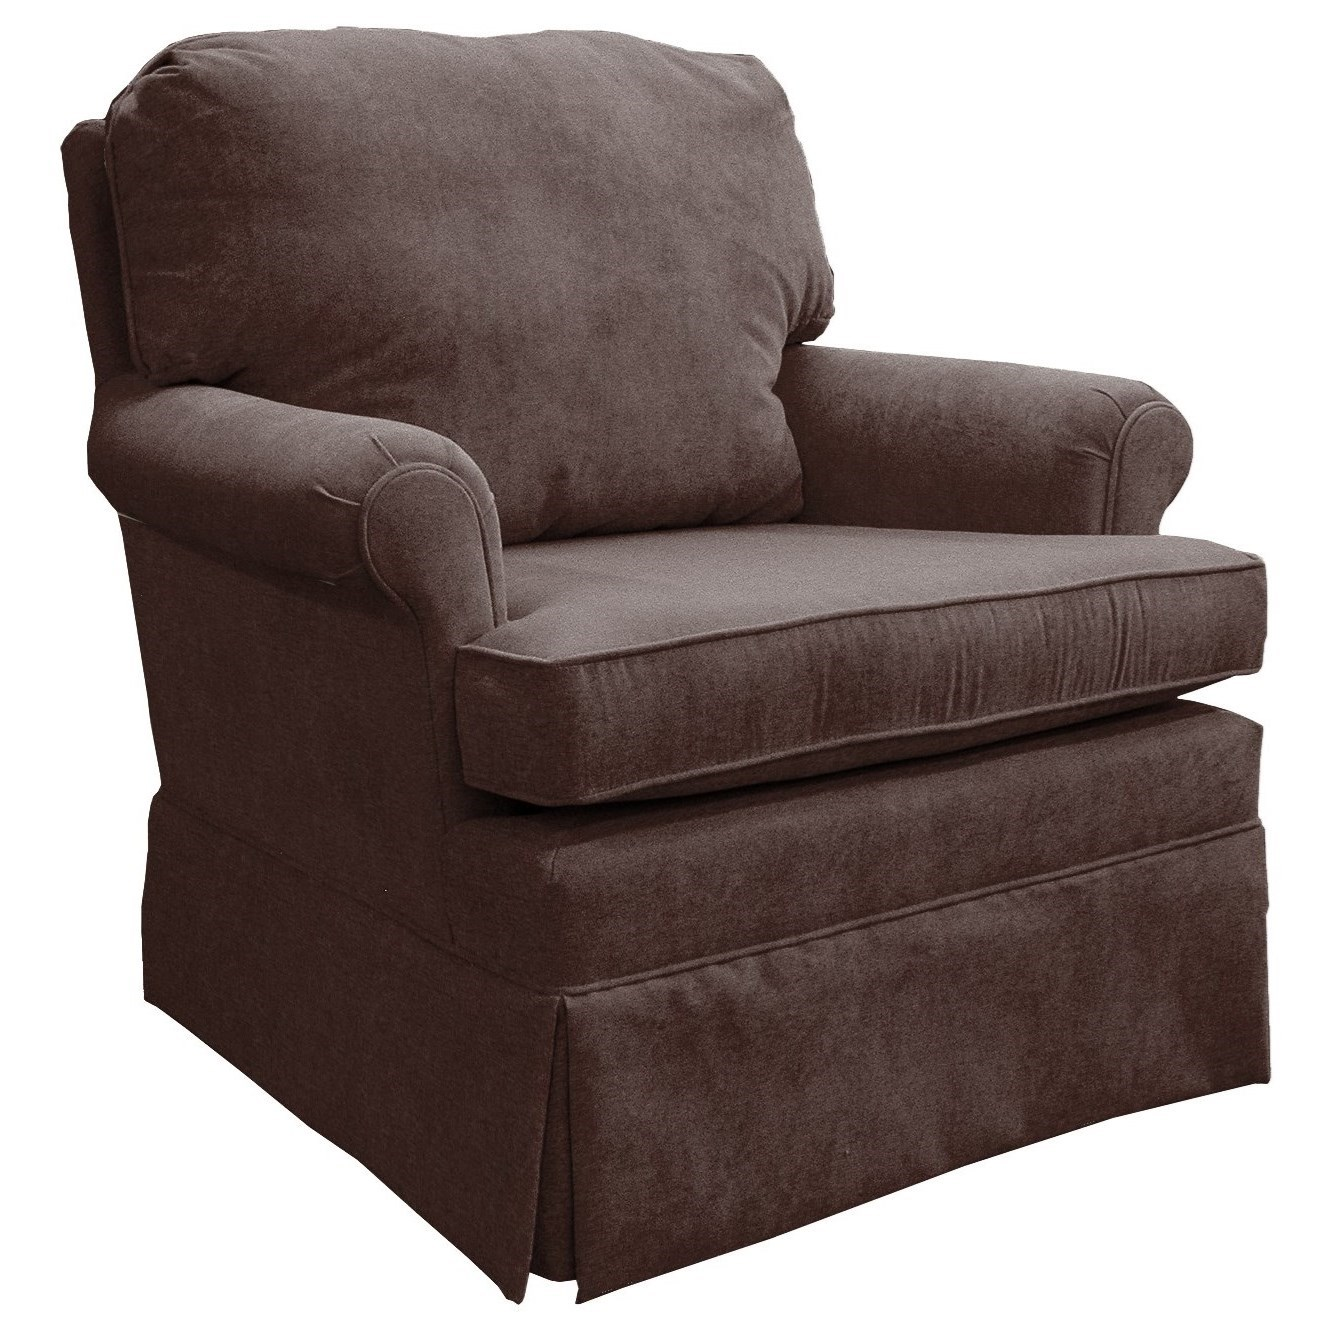 Vendor 411 patoka 2616 comfortable glider club chair for Furniture 411